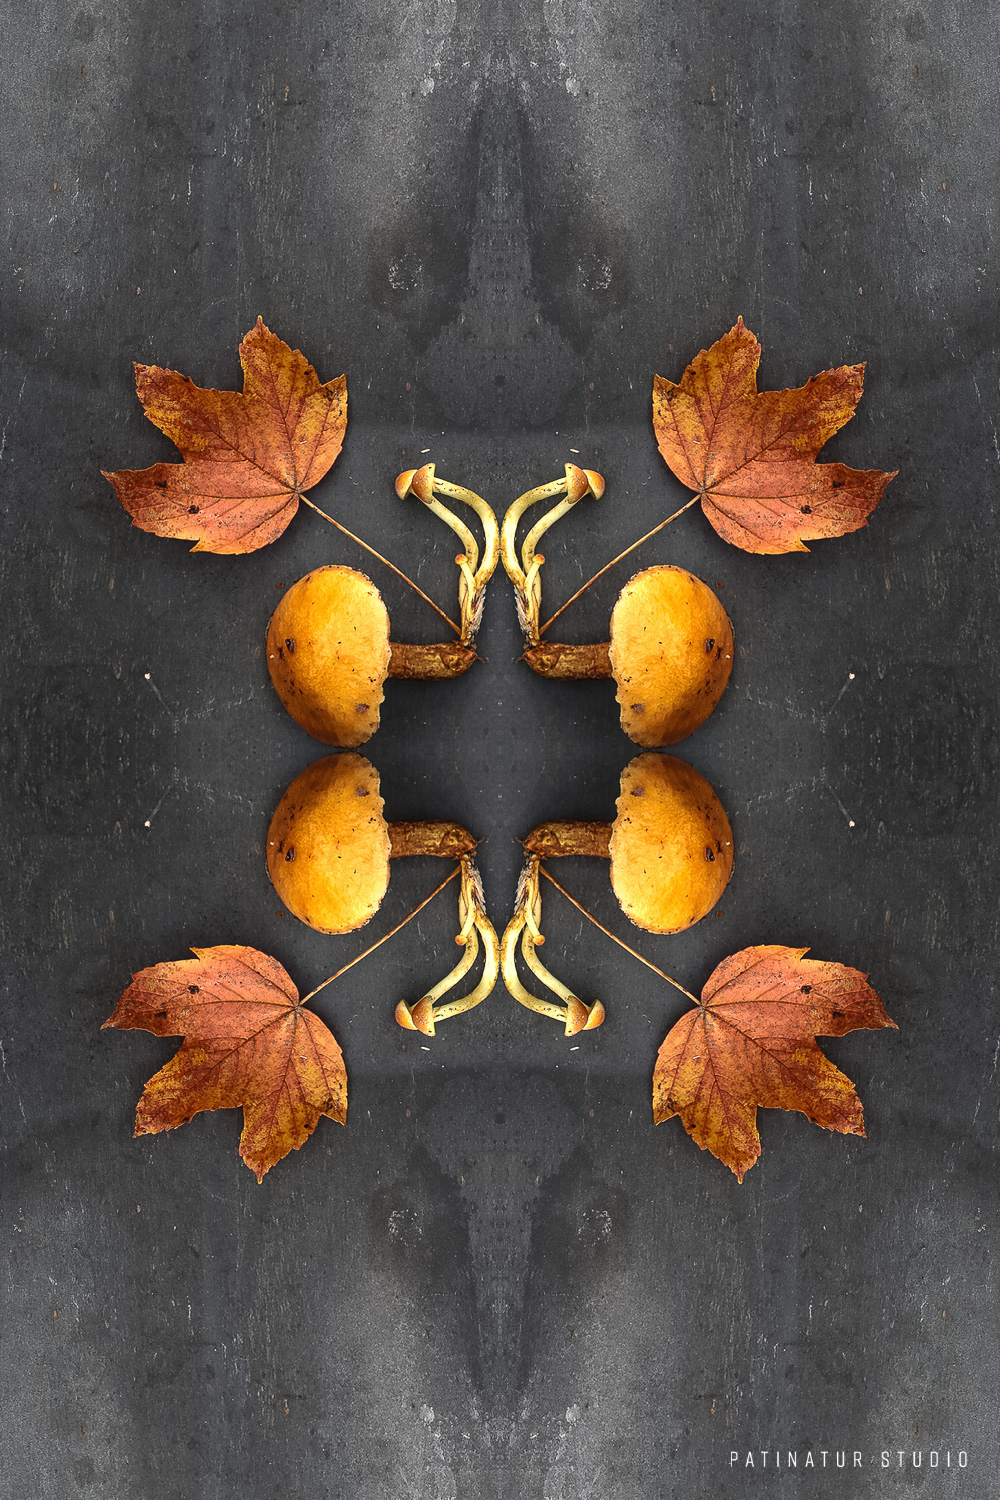 Photo art | Botanical caleidoscope in yellow and orange